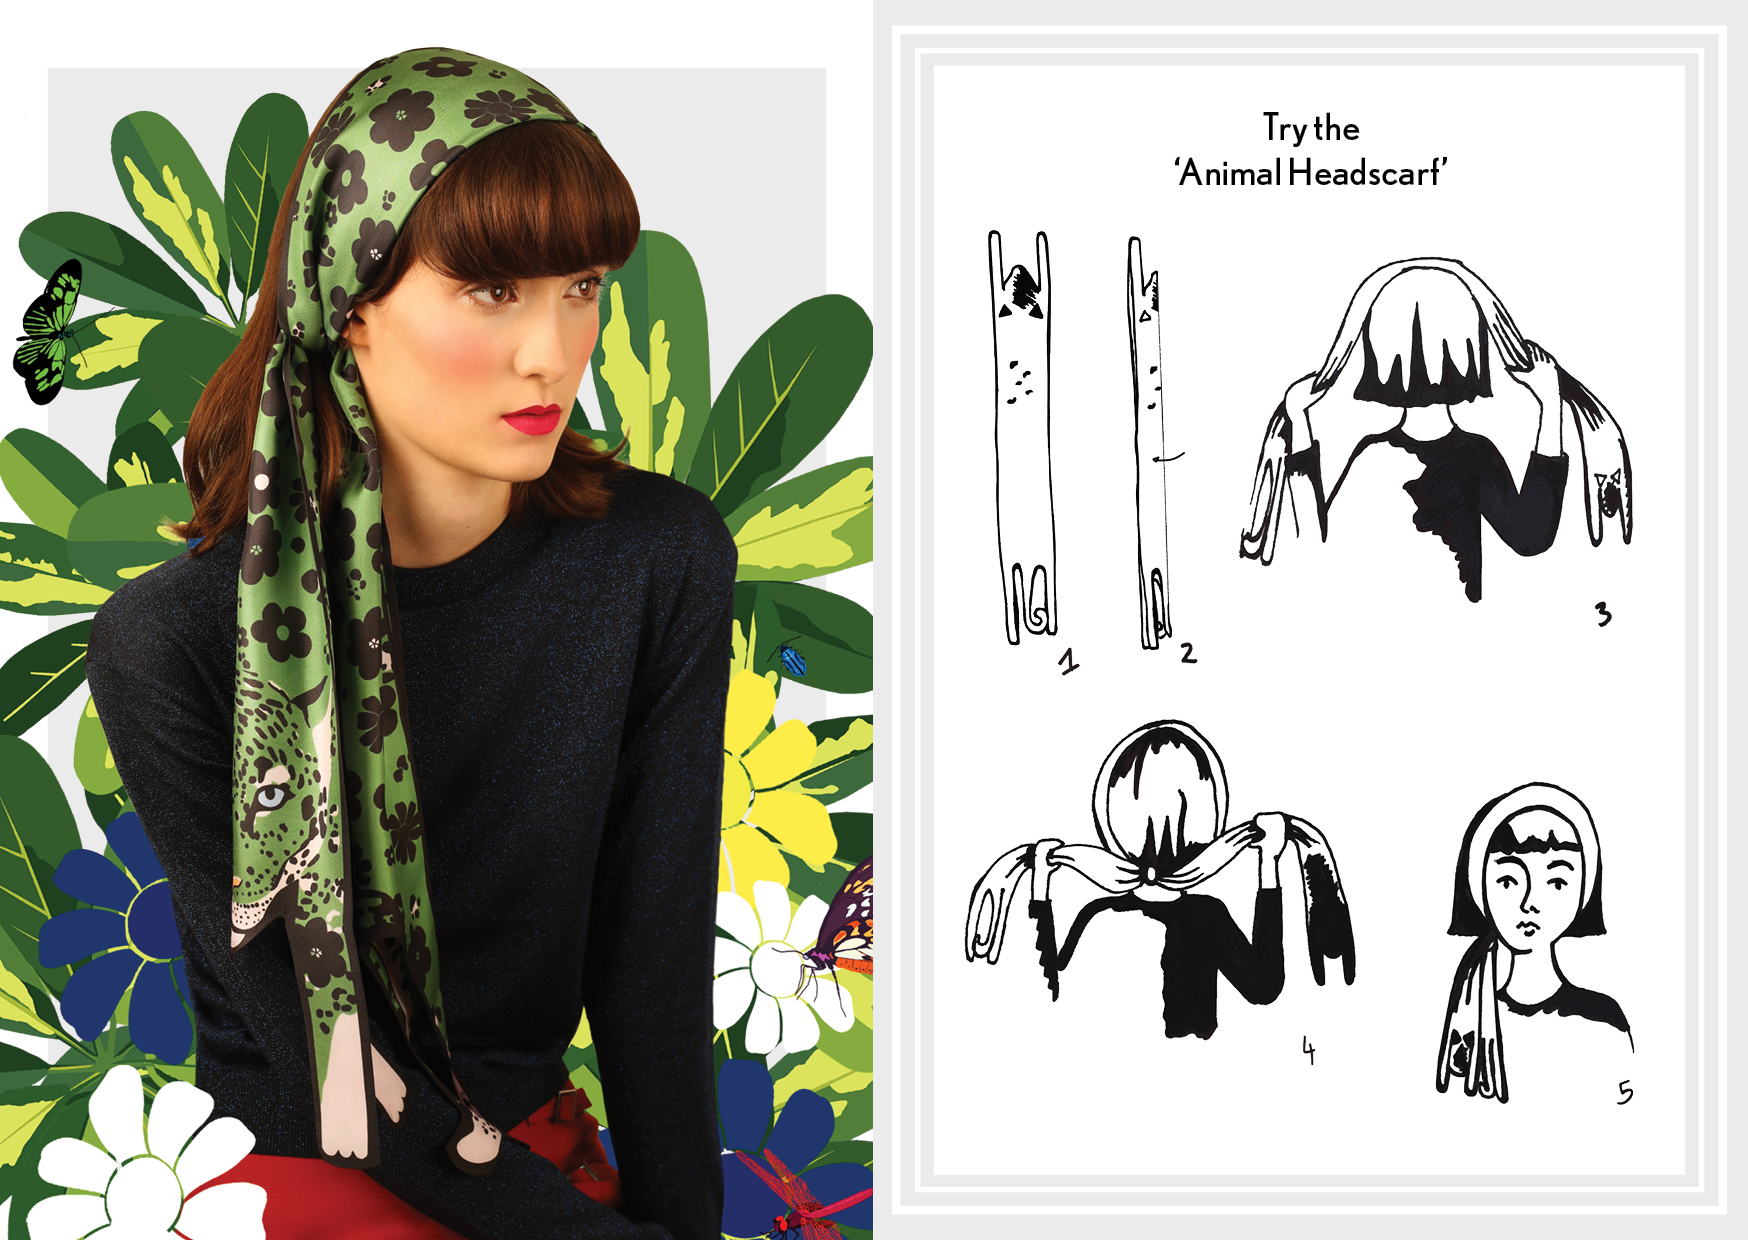 Animal Headscarf Flower Power Jaguar - how to style a silk scarf - Animal Long Silk Scarf.jpg.jpg